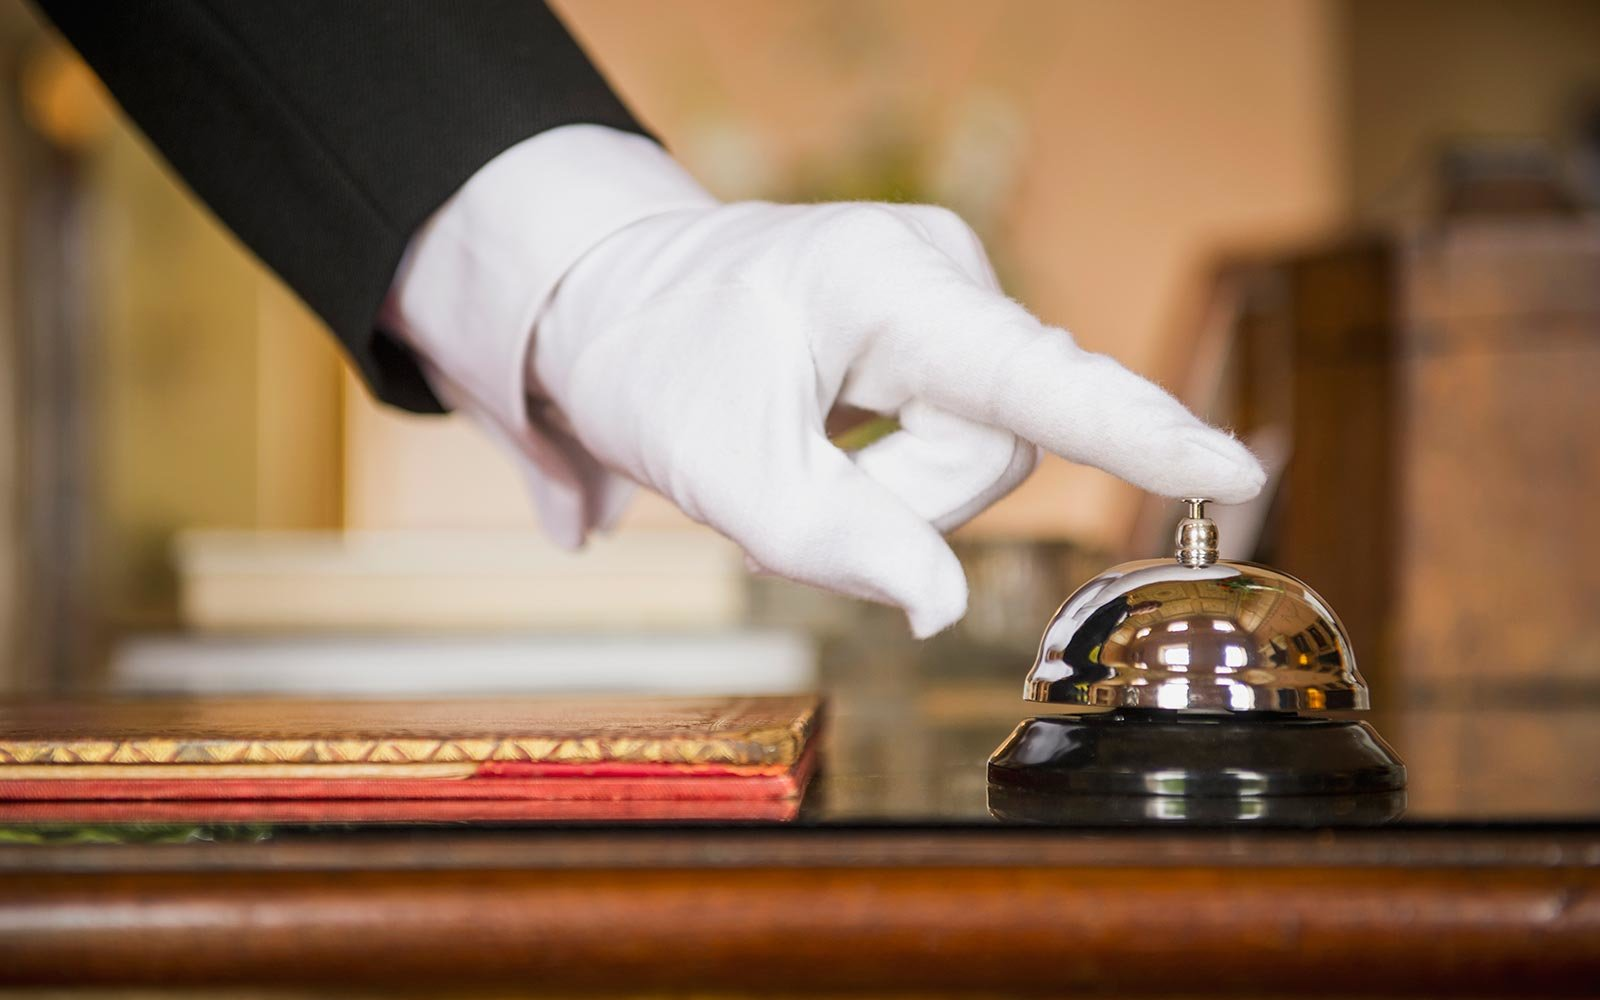 Butler Service Hotel Amenity